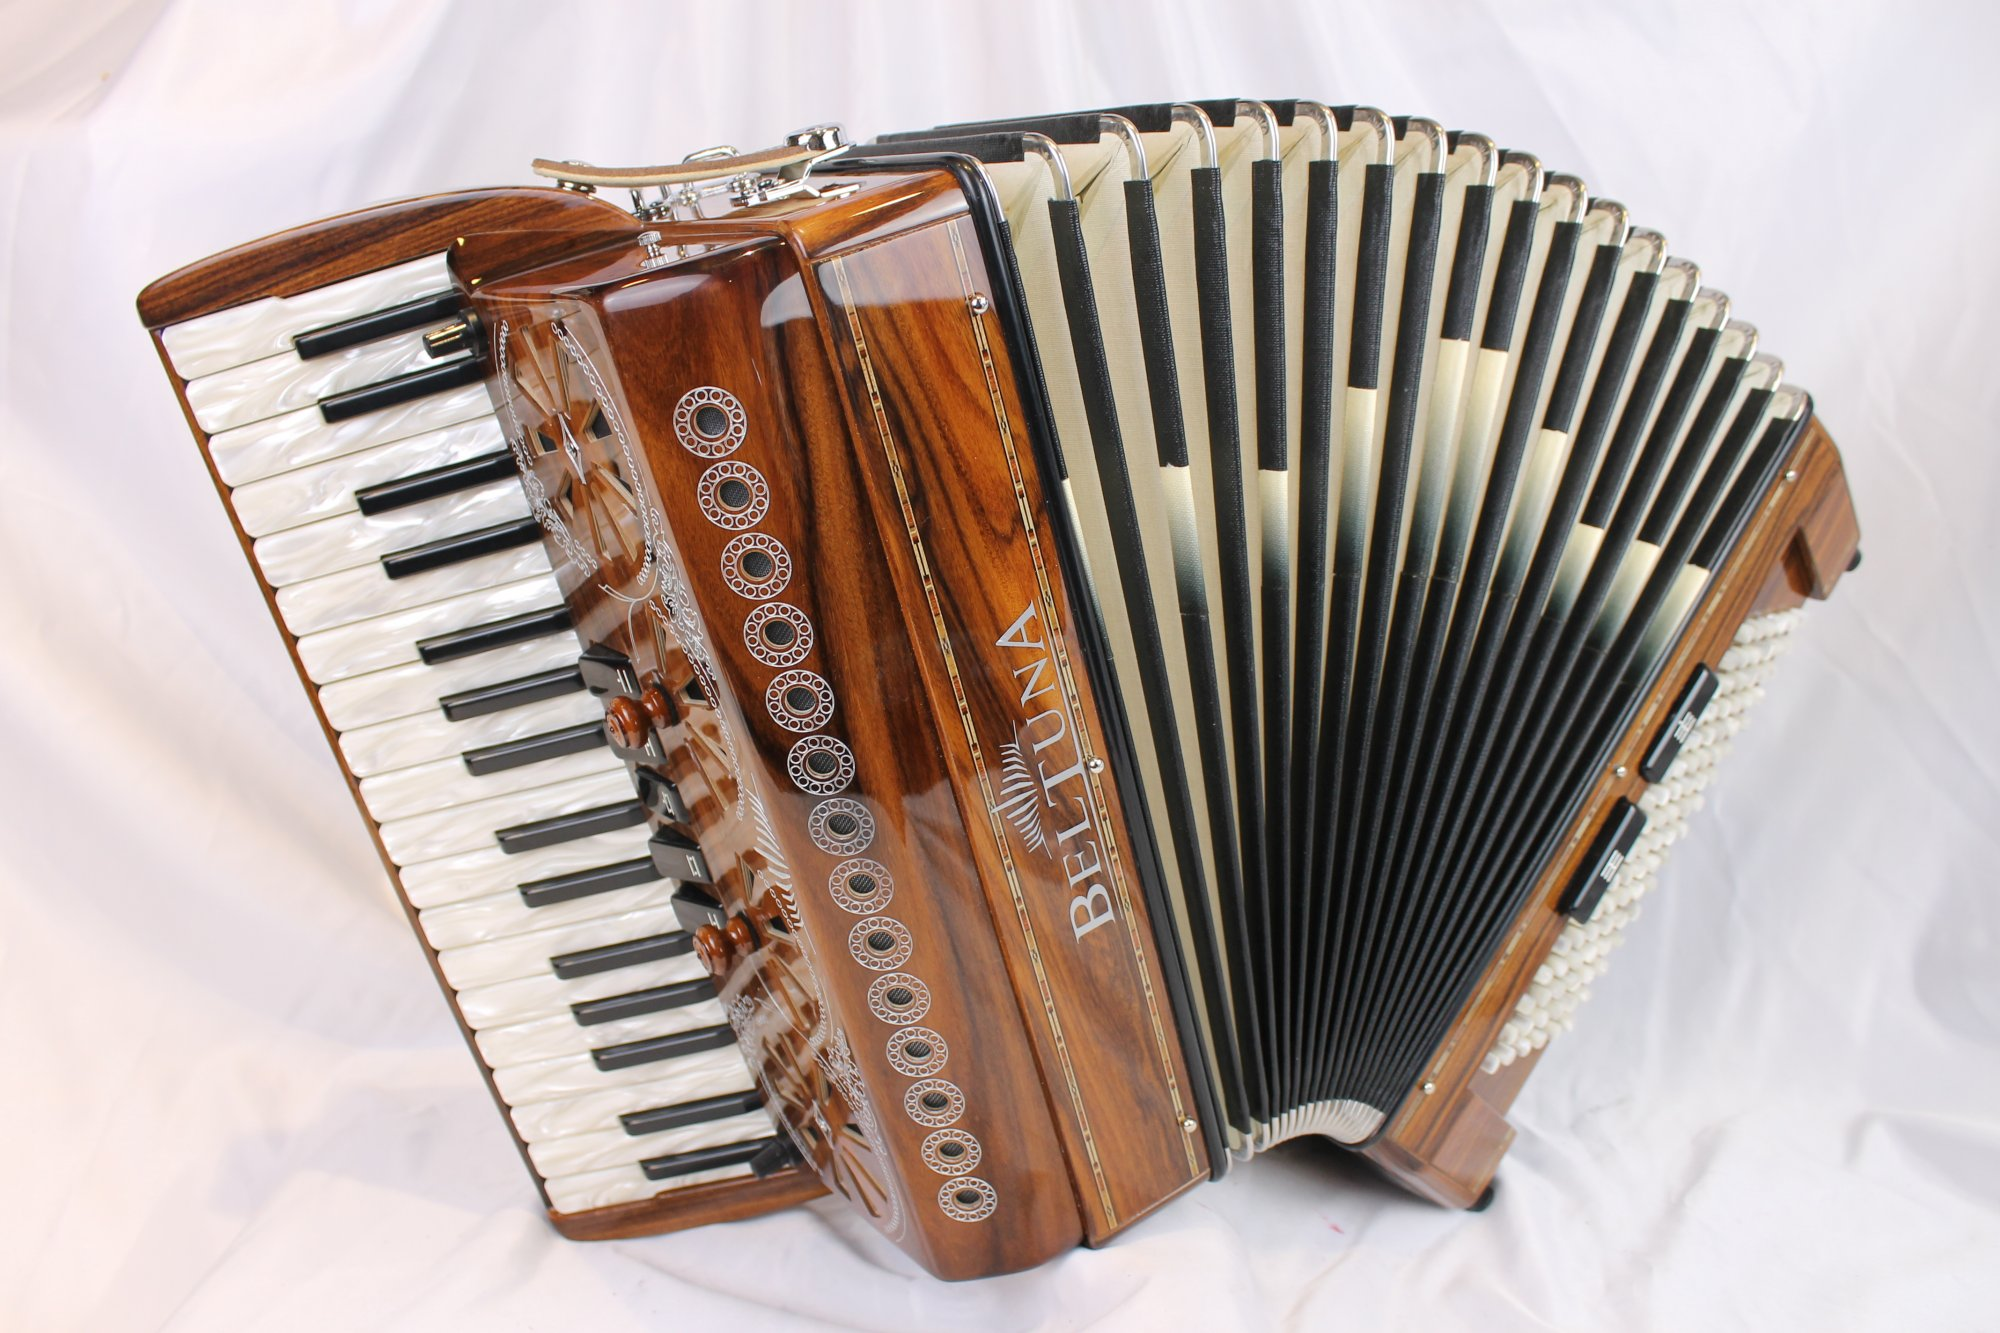 NEW Folklore Beltuna Alpstar III Piano Accordion LMM 34 96